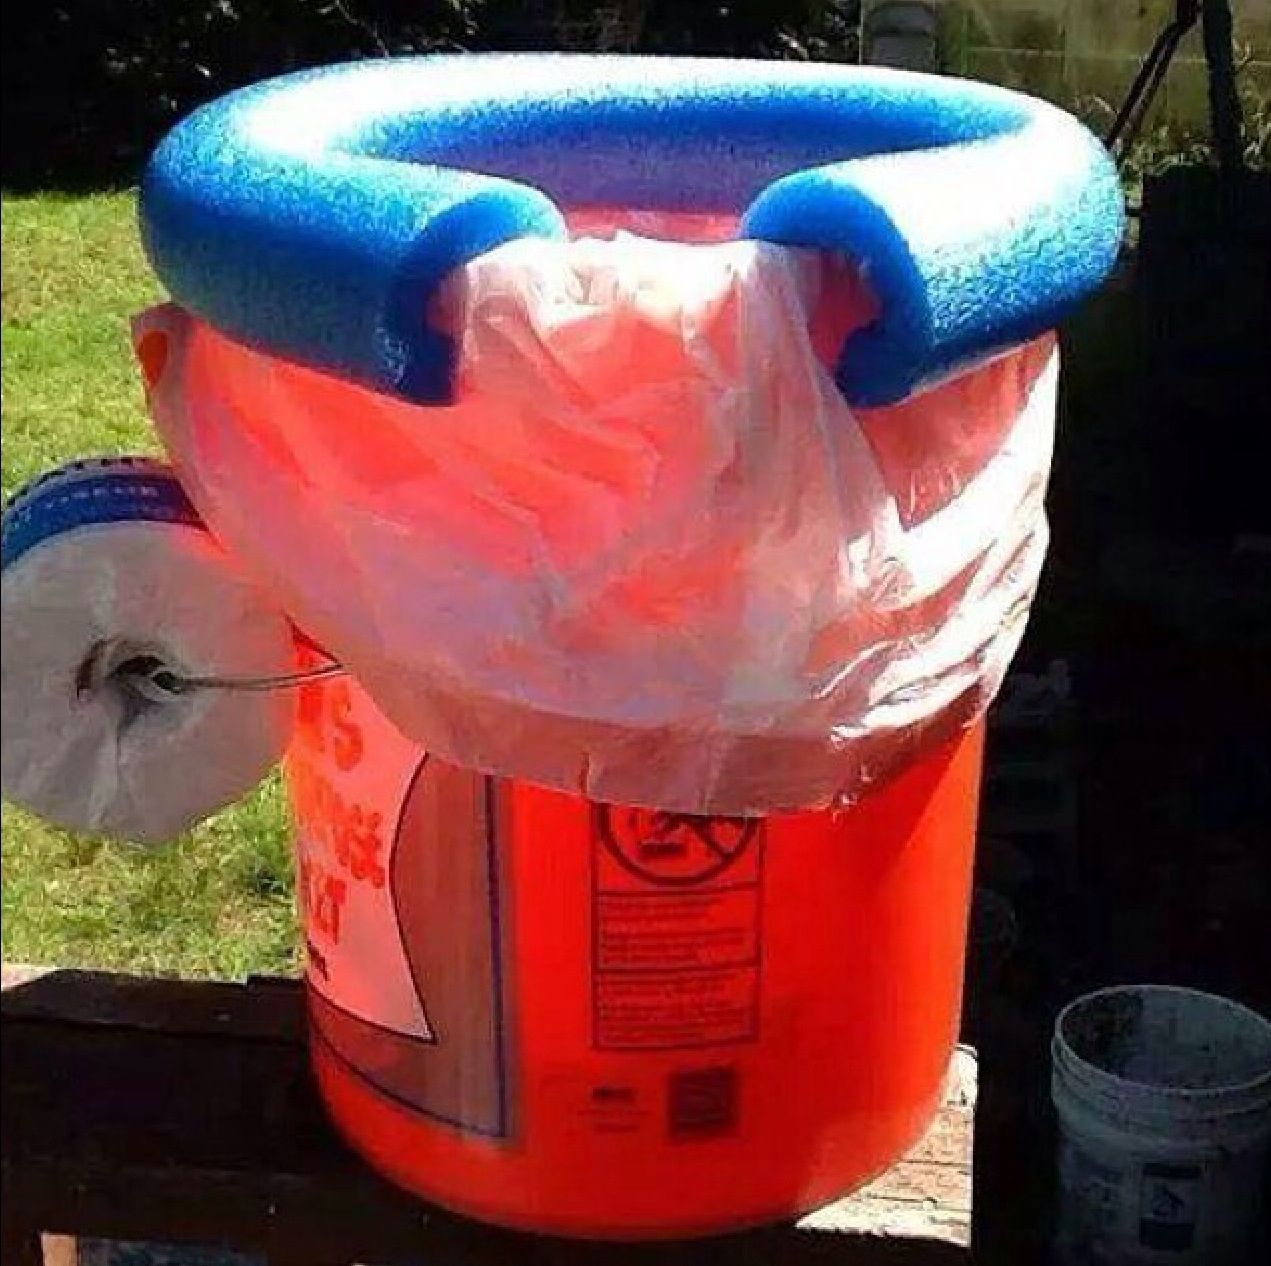 Home Made Portable Toilet Made With A 5 Gallon Bucket A Trash Bag And A Pool Noodle Diy Camping Camping Toilet Travel Potty